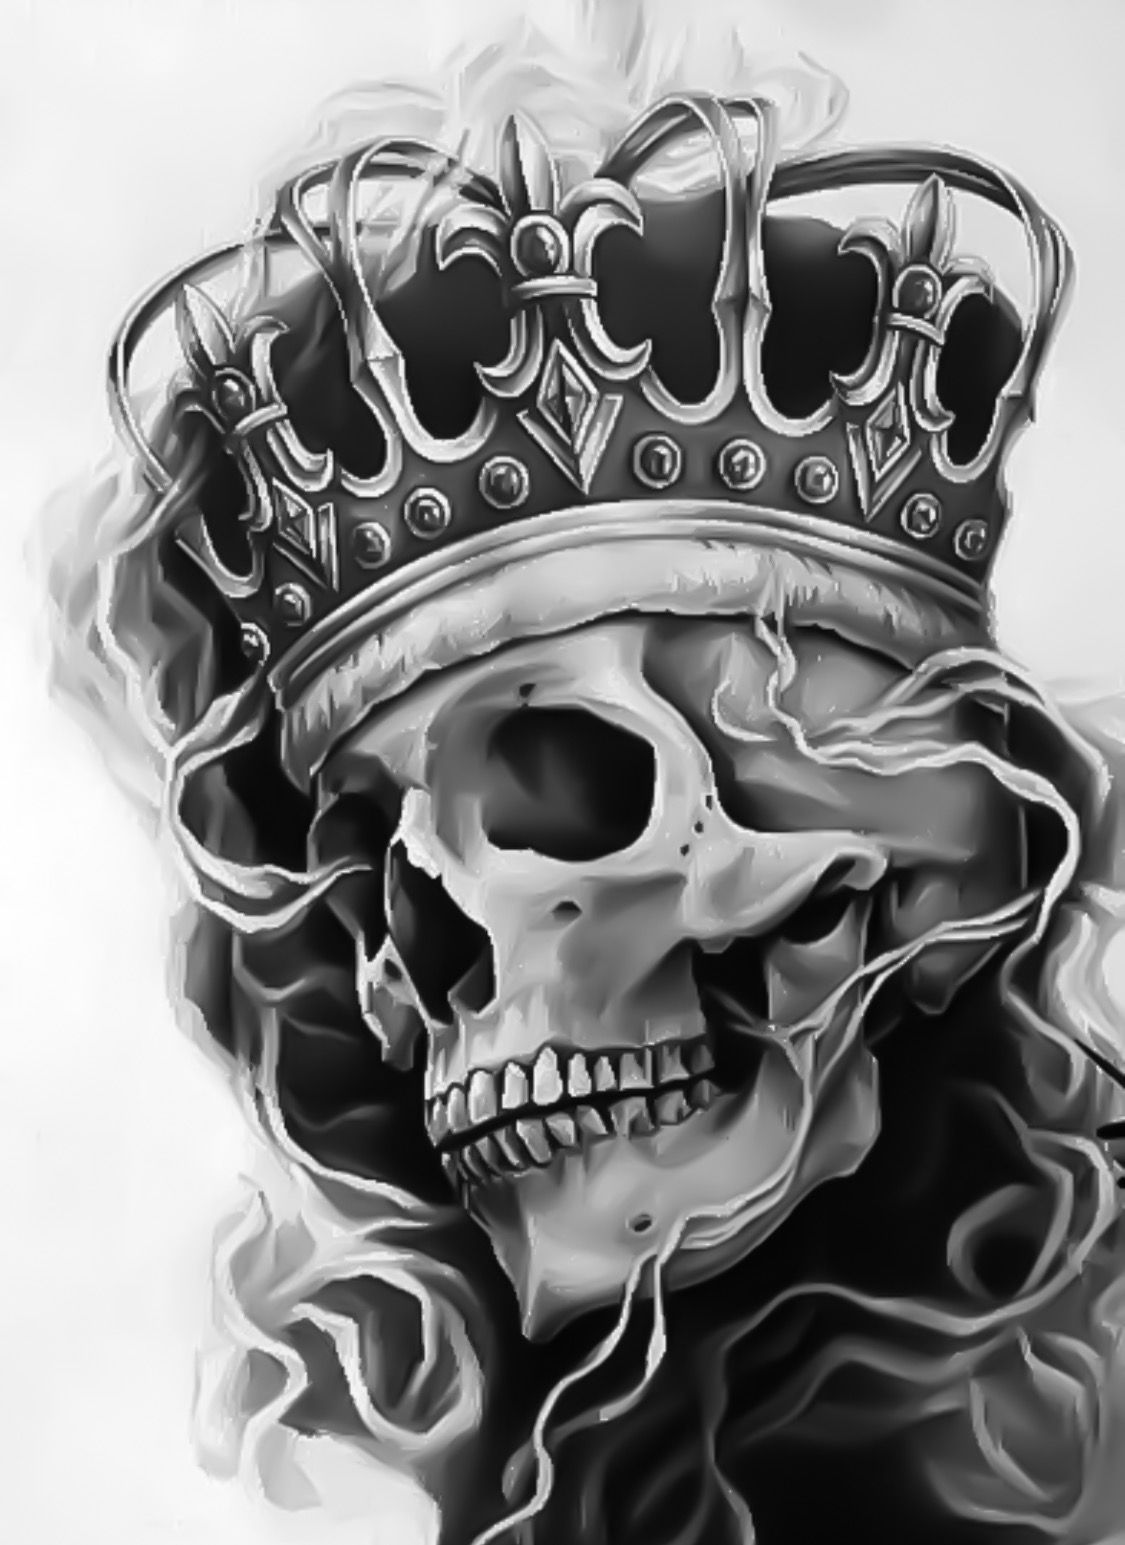 king skull tattoo tattoos pinterest totenk pfe totenkopf tattoos und tattoo ideen. Black Bedroom Furniture Sets. Home Design Ideas